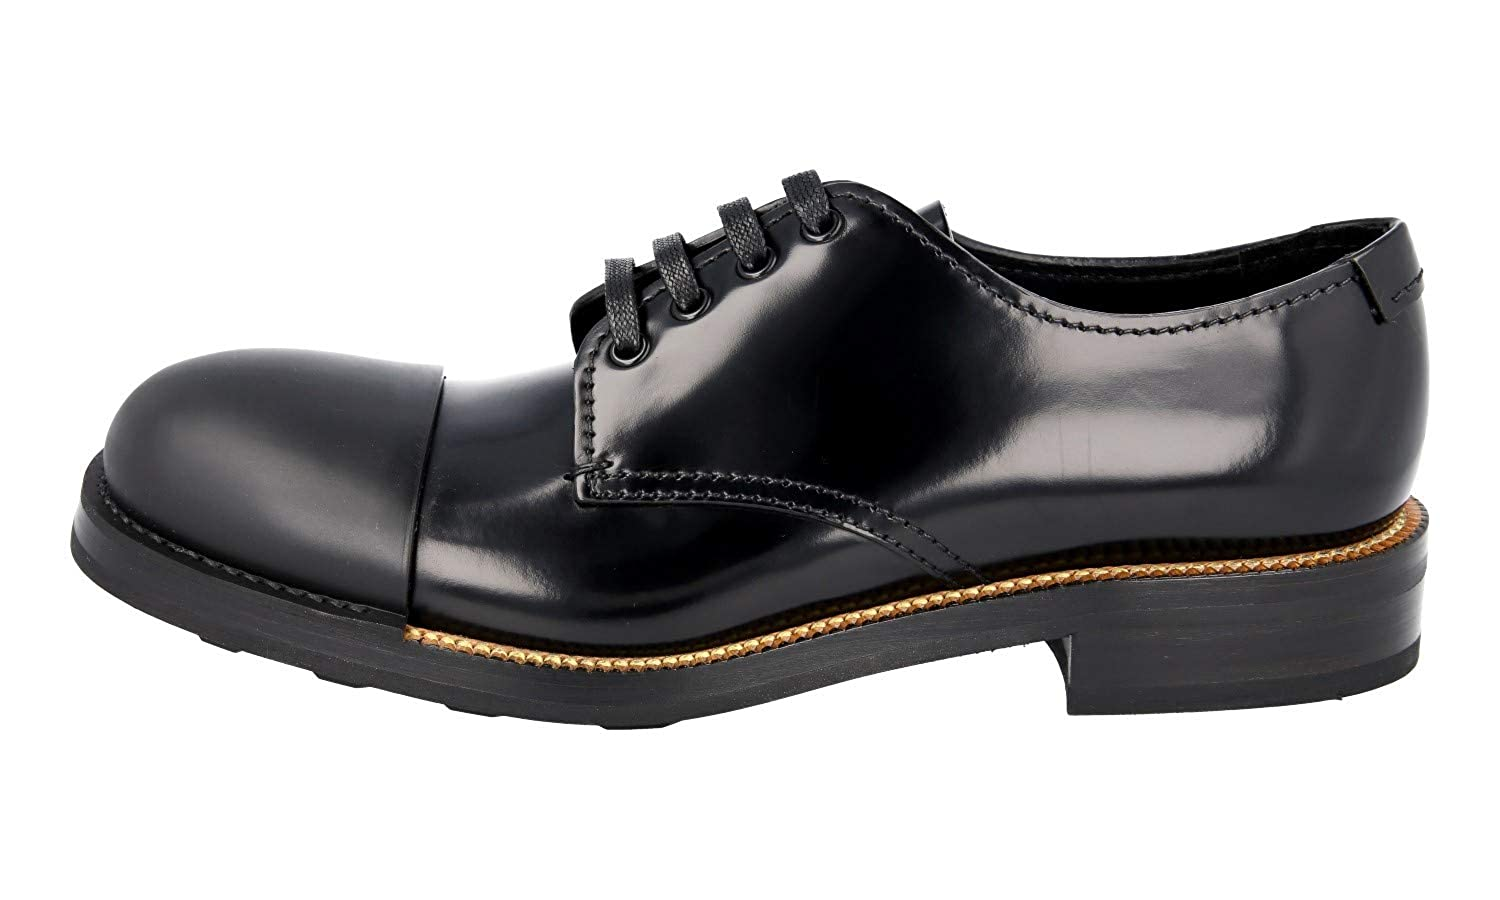 4bc2f291a349 Amazon.com | Prada Men's 2EG190 055 F0002 Brushed Spazzolato Leather  Lace-up Shoes | Shoes